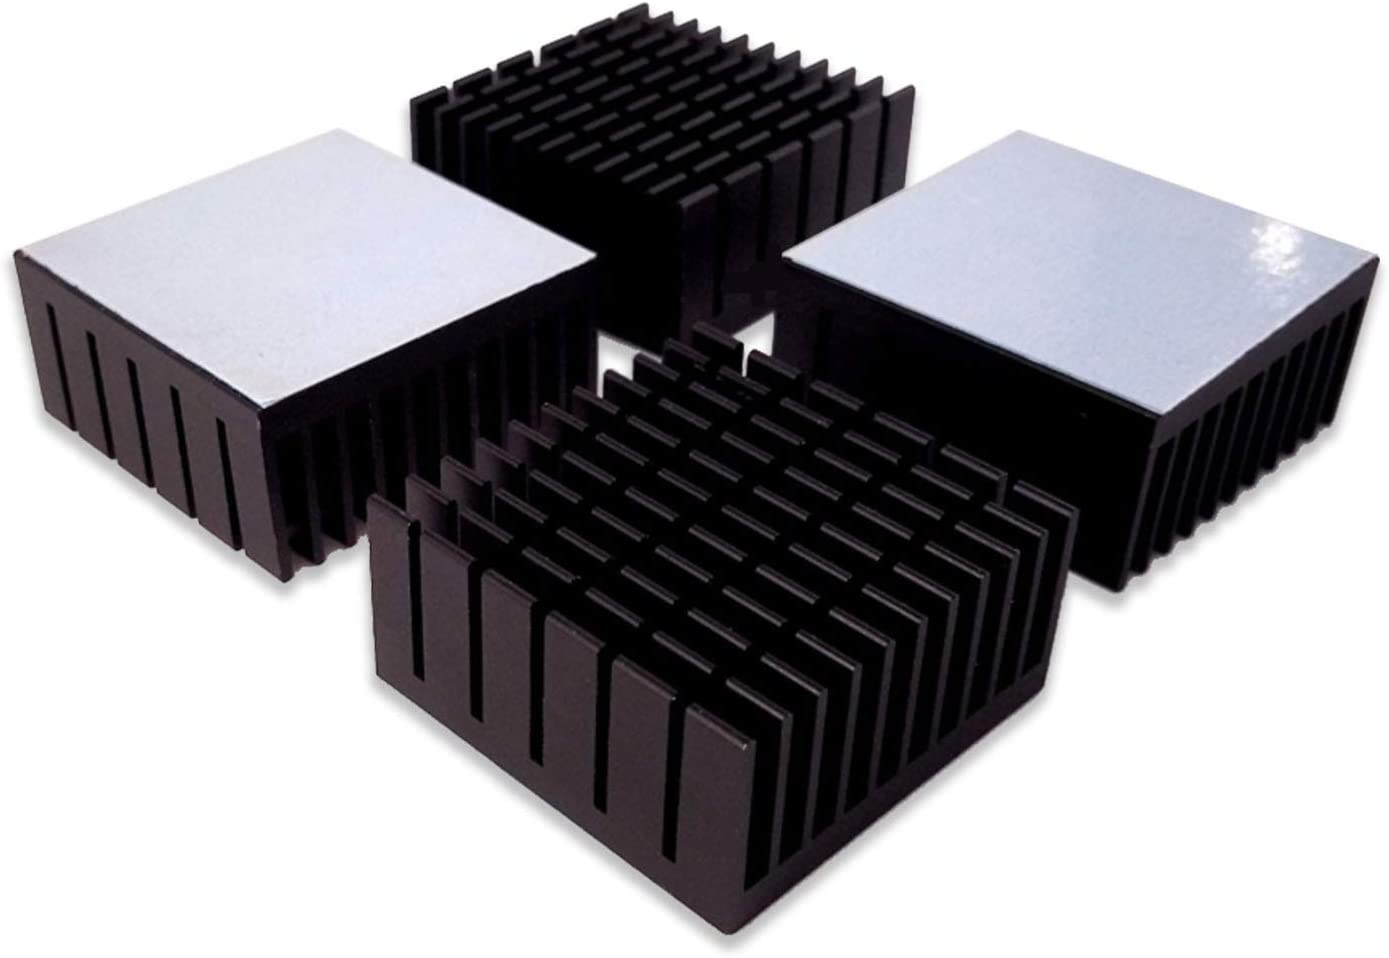 100pcs Small Black Cube HEATSINK 10x10x10mm Aluminum Cooler for IC With Blue Pad